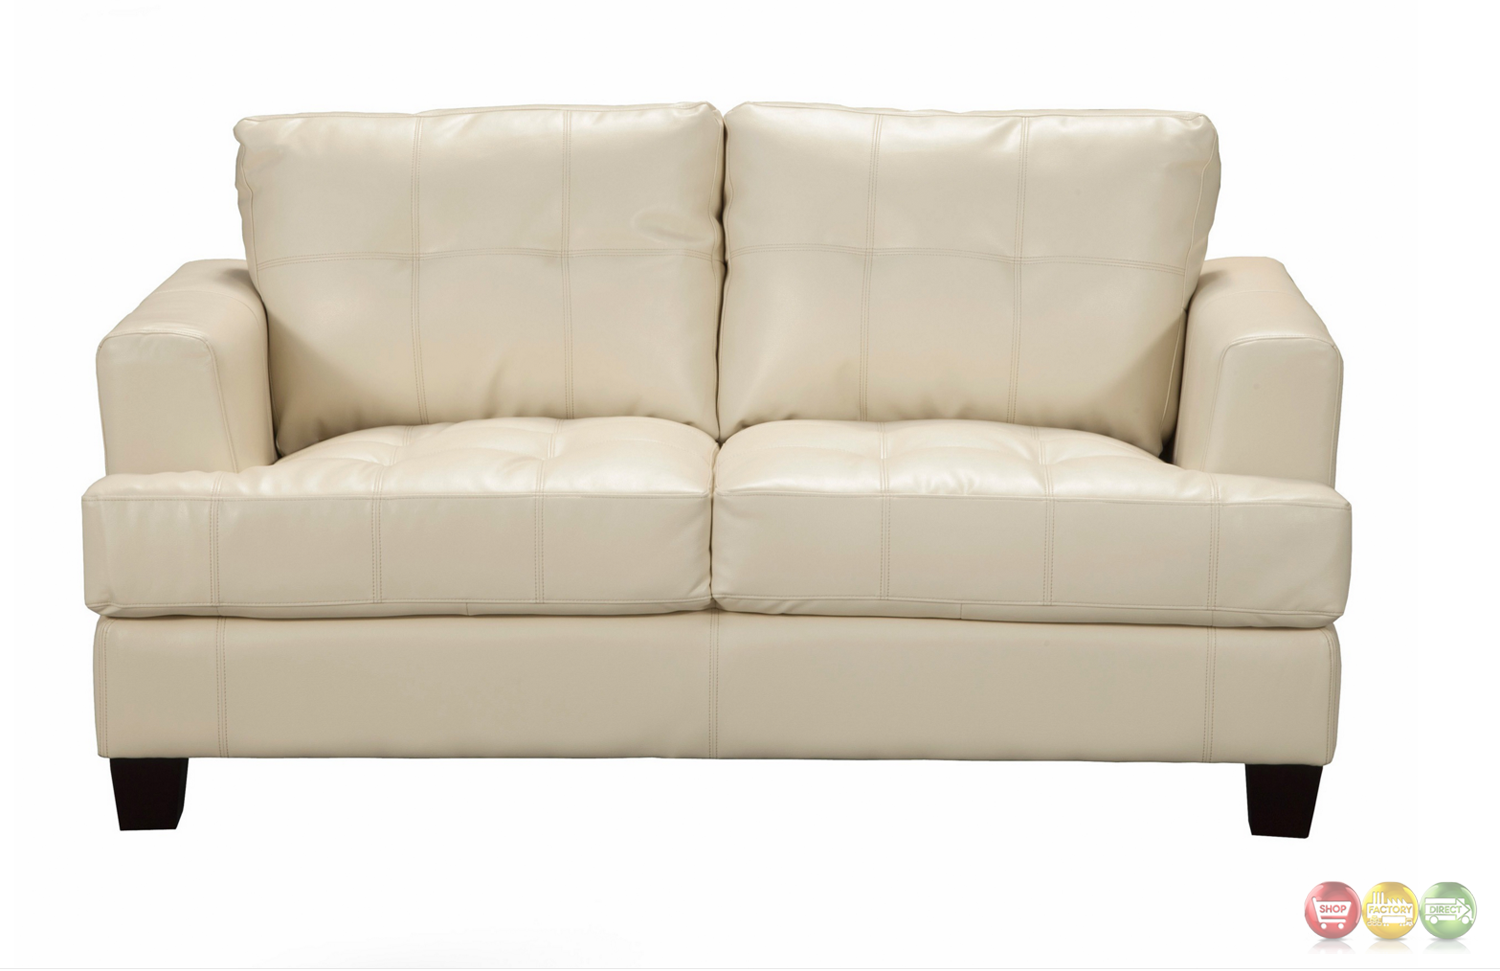 Samuel Contemporary Cream Leather Button Tufted Loveseat 501692 Ebay